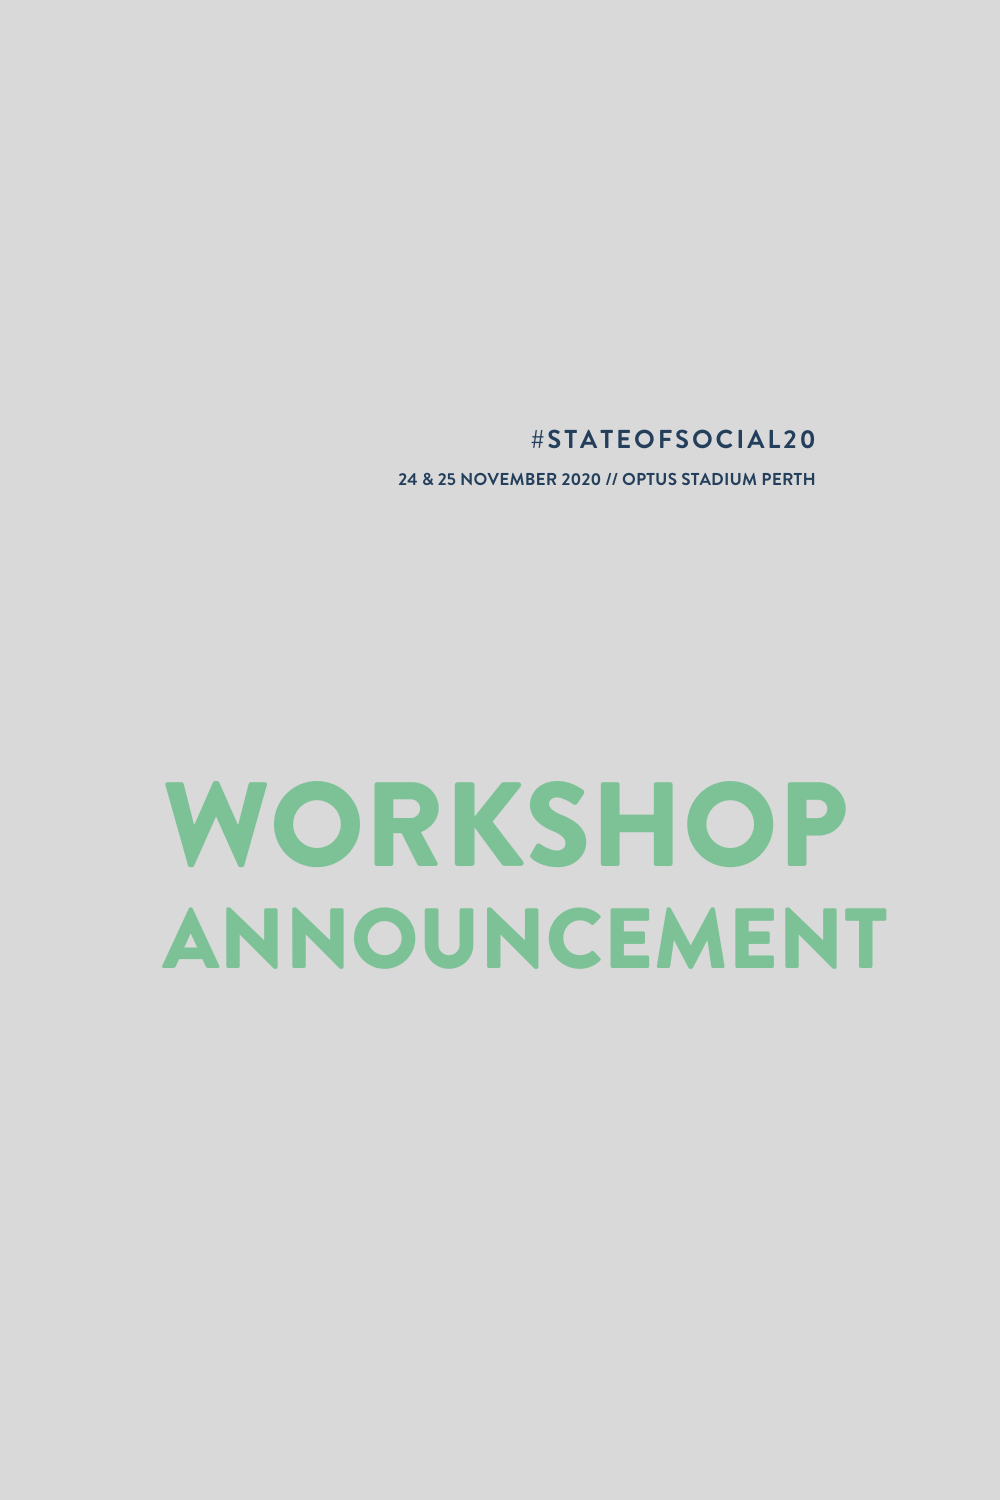 SOS '20 workshop announcement: Social stories and puppies